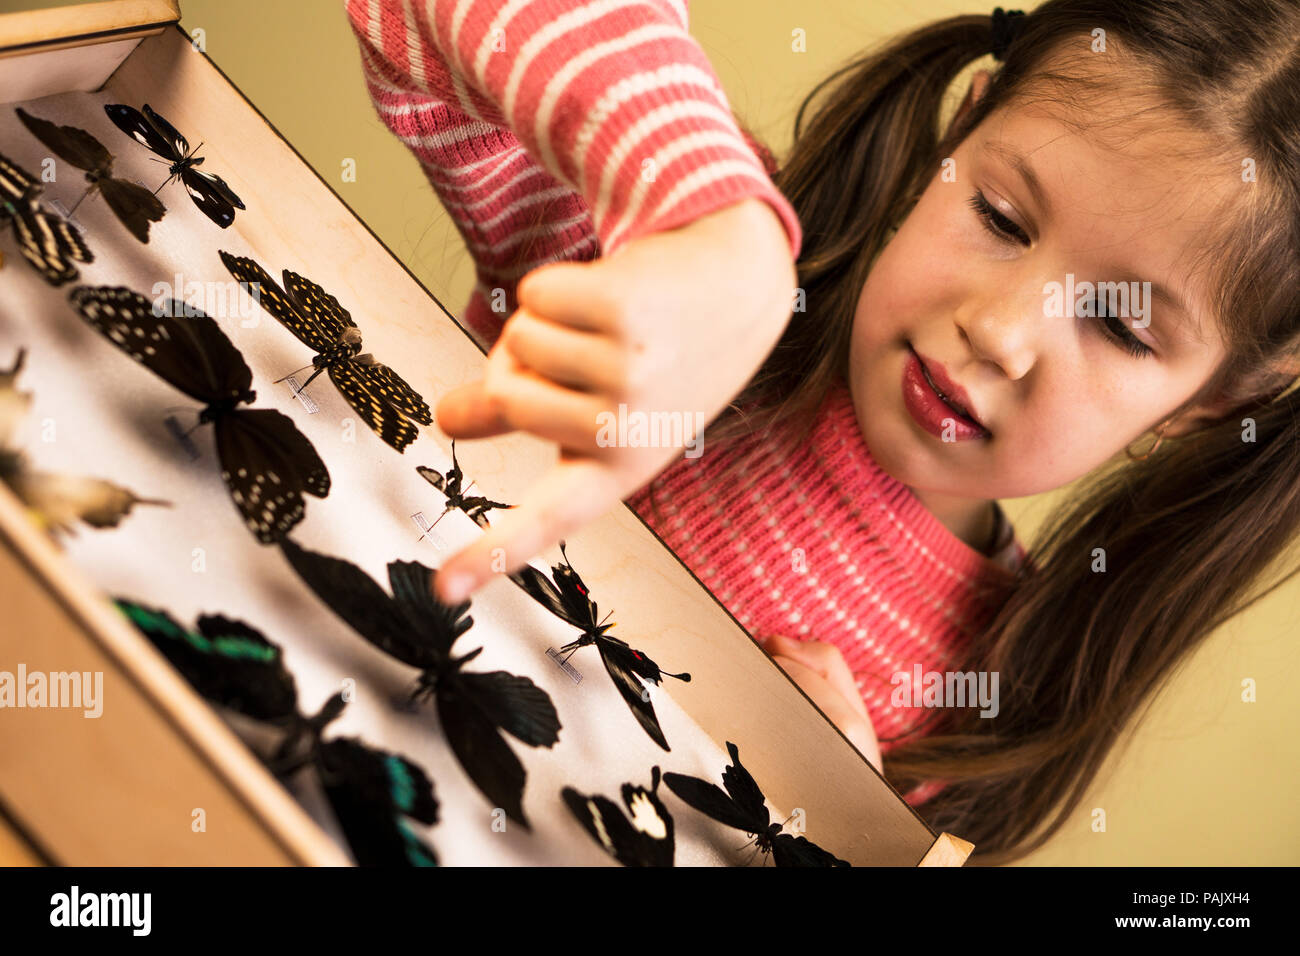 Little Girl Researching Entomology Collection of Tropical Butterflies - Stock Image